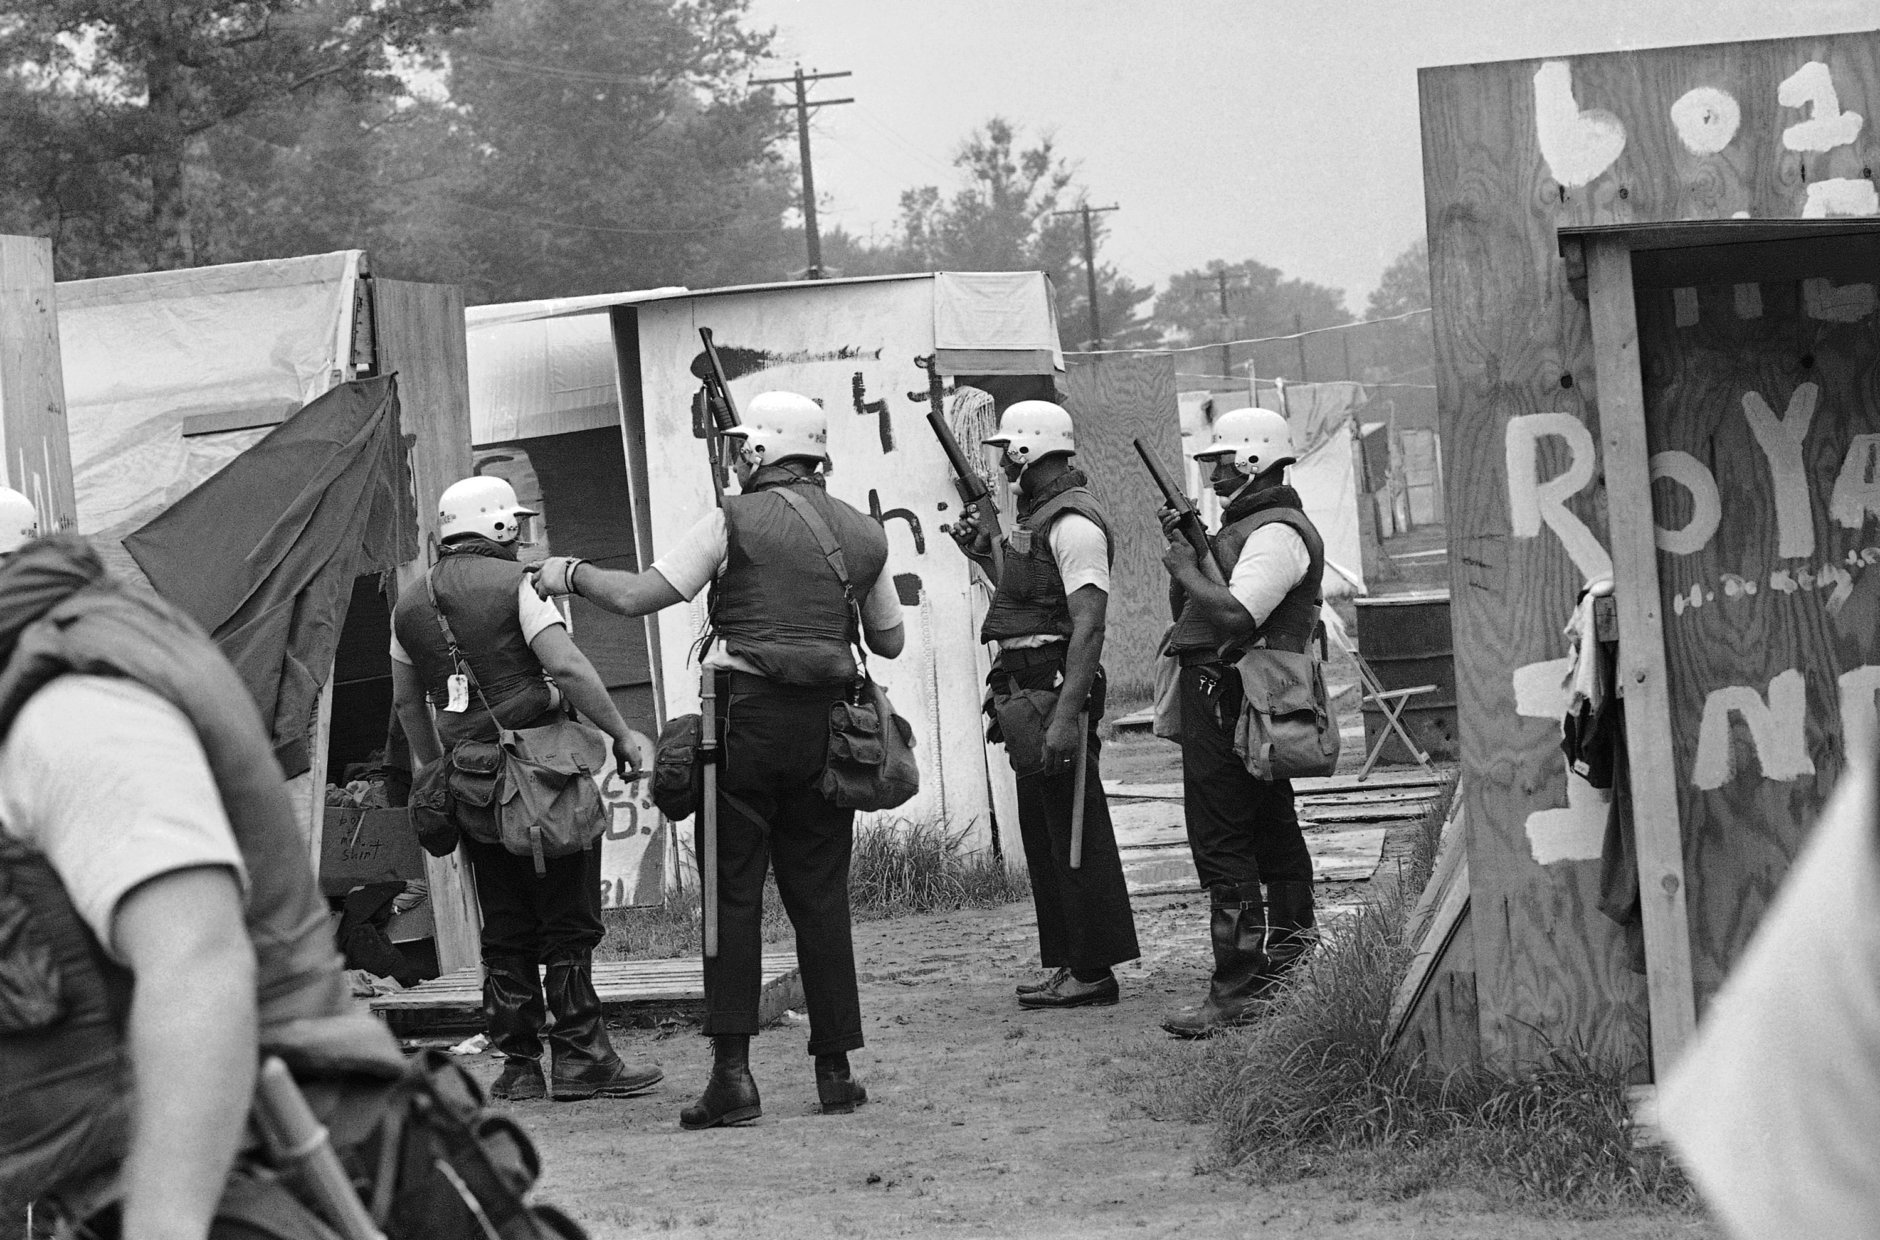 Heavily armed and wearing protective clothing, police move through Resurrection City, the camp of the Poor People's Campaign, clearing the area of all residents in Washington, June 24, 1968. Their permit to camp on Federal Park land expired on June 23. (AP Photo/Charles Harrity)